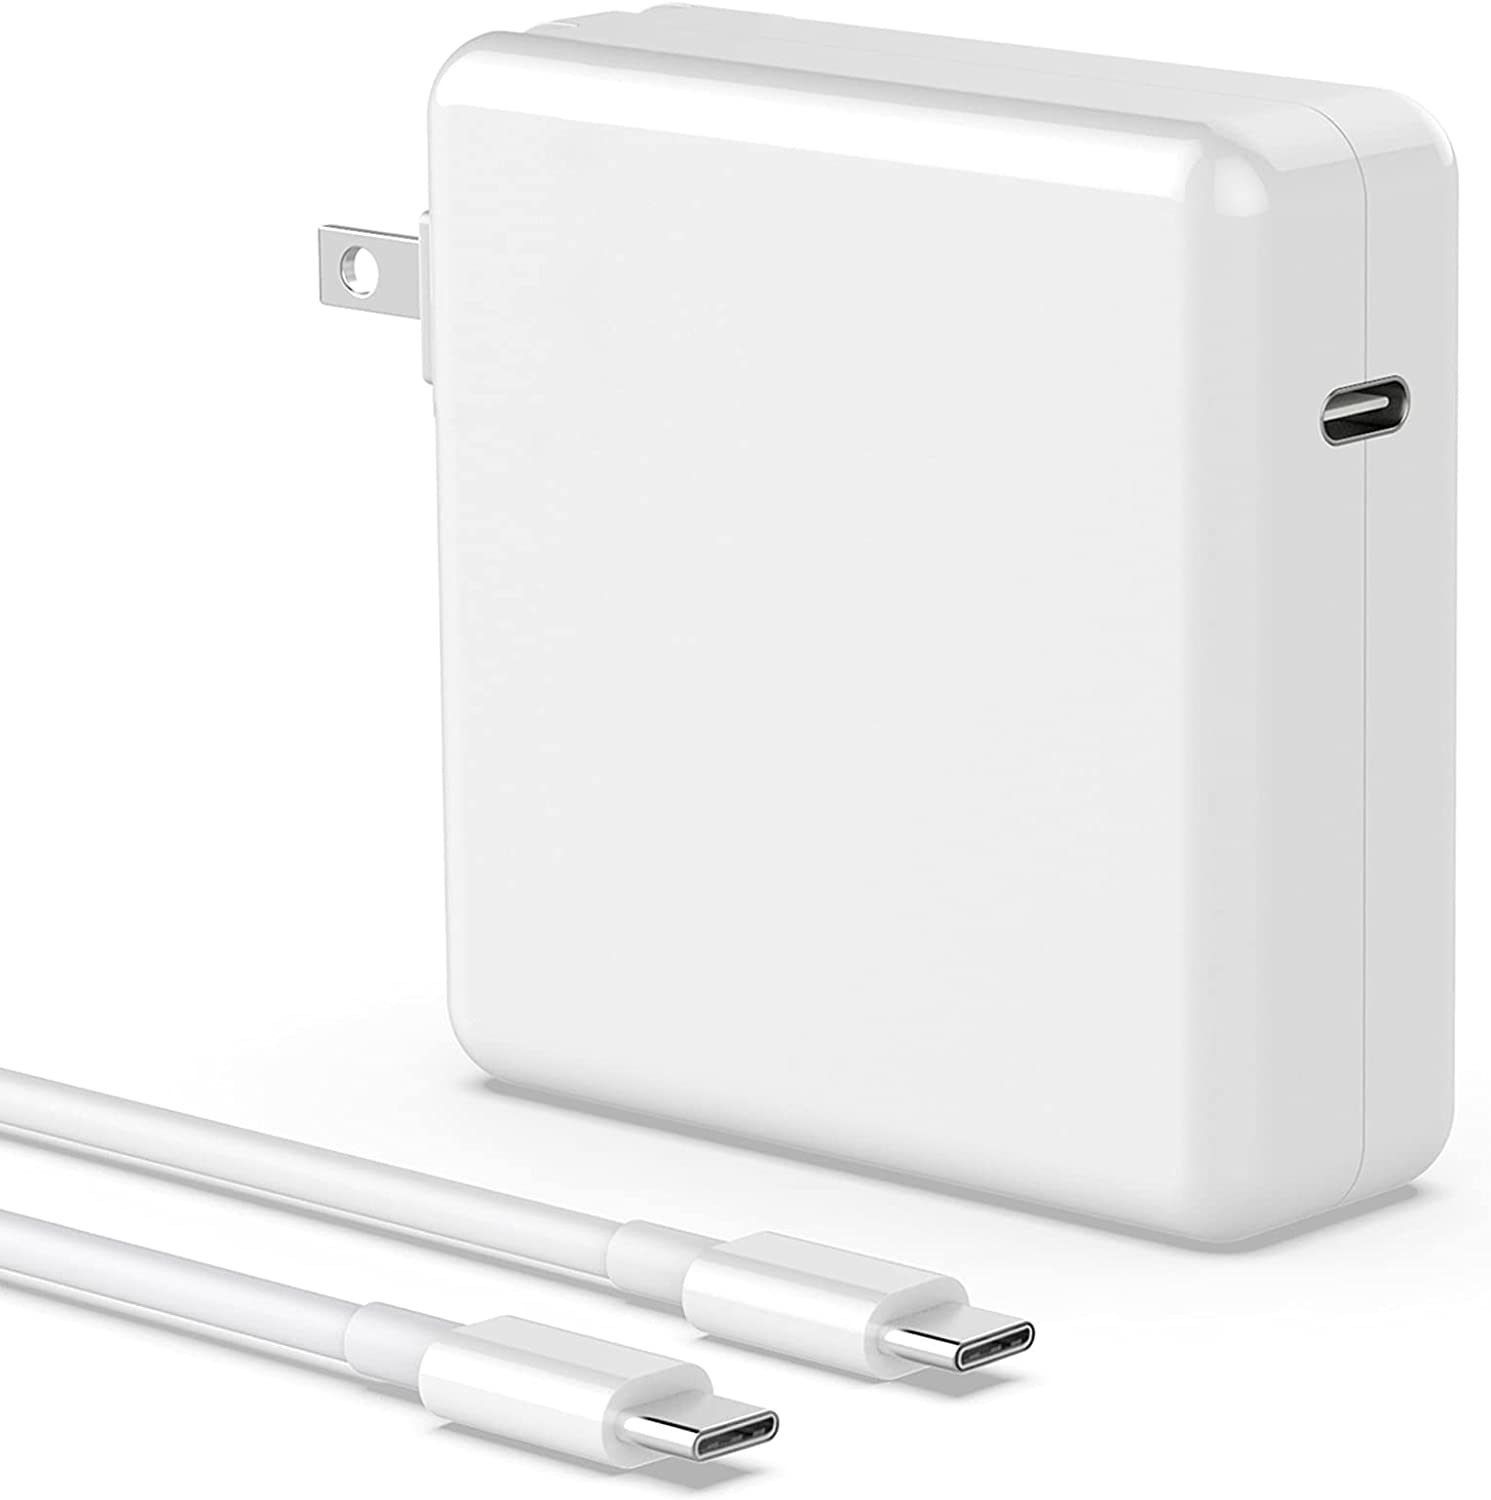 Mac Book Pro Charger - 96W USB C Power Adapter Compatible with MacBook Pro 16, 15, 13 Inch 2020 2019 2018, MacBook Air 13 Inch, Thunderbolt 3 Laptop Power Supply, Included 6.6ft USB-C to USB-C Cable